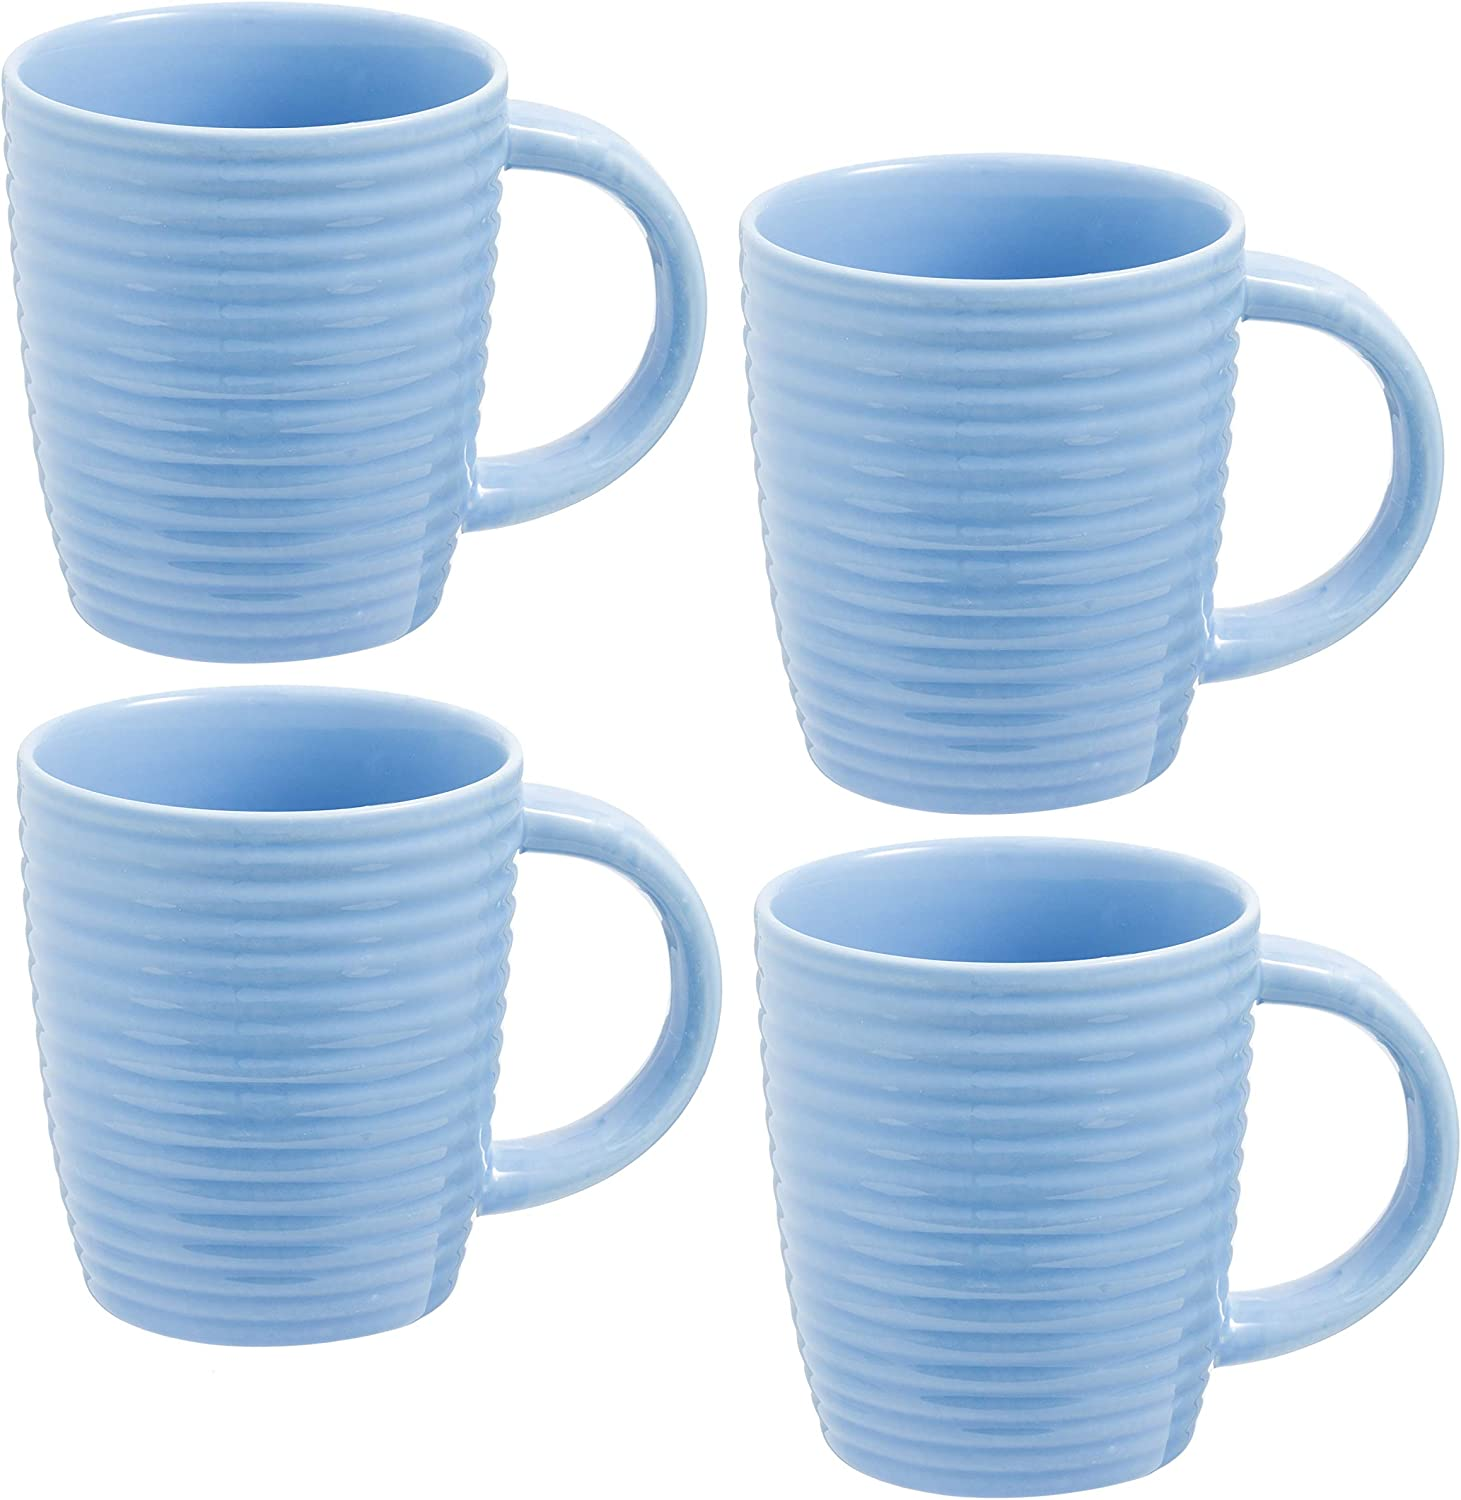 Large Coffee Mugs Set of 4 | 14 Ounce Porcelain Cups with Strong Handles for Tea, Hot Cocoa | Microwave and Dishwasher Safe | Diner Style Perfect for Any Home or Gift | Blue